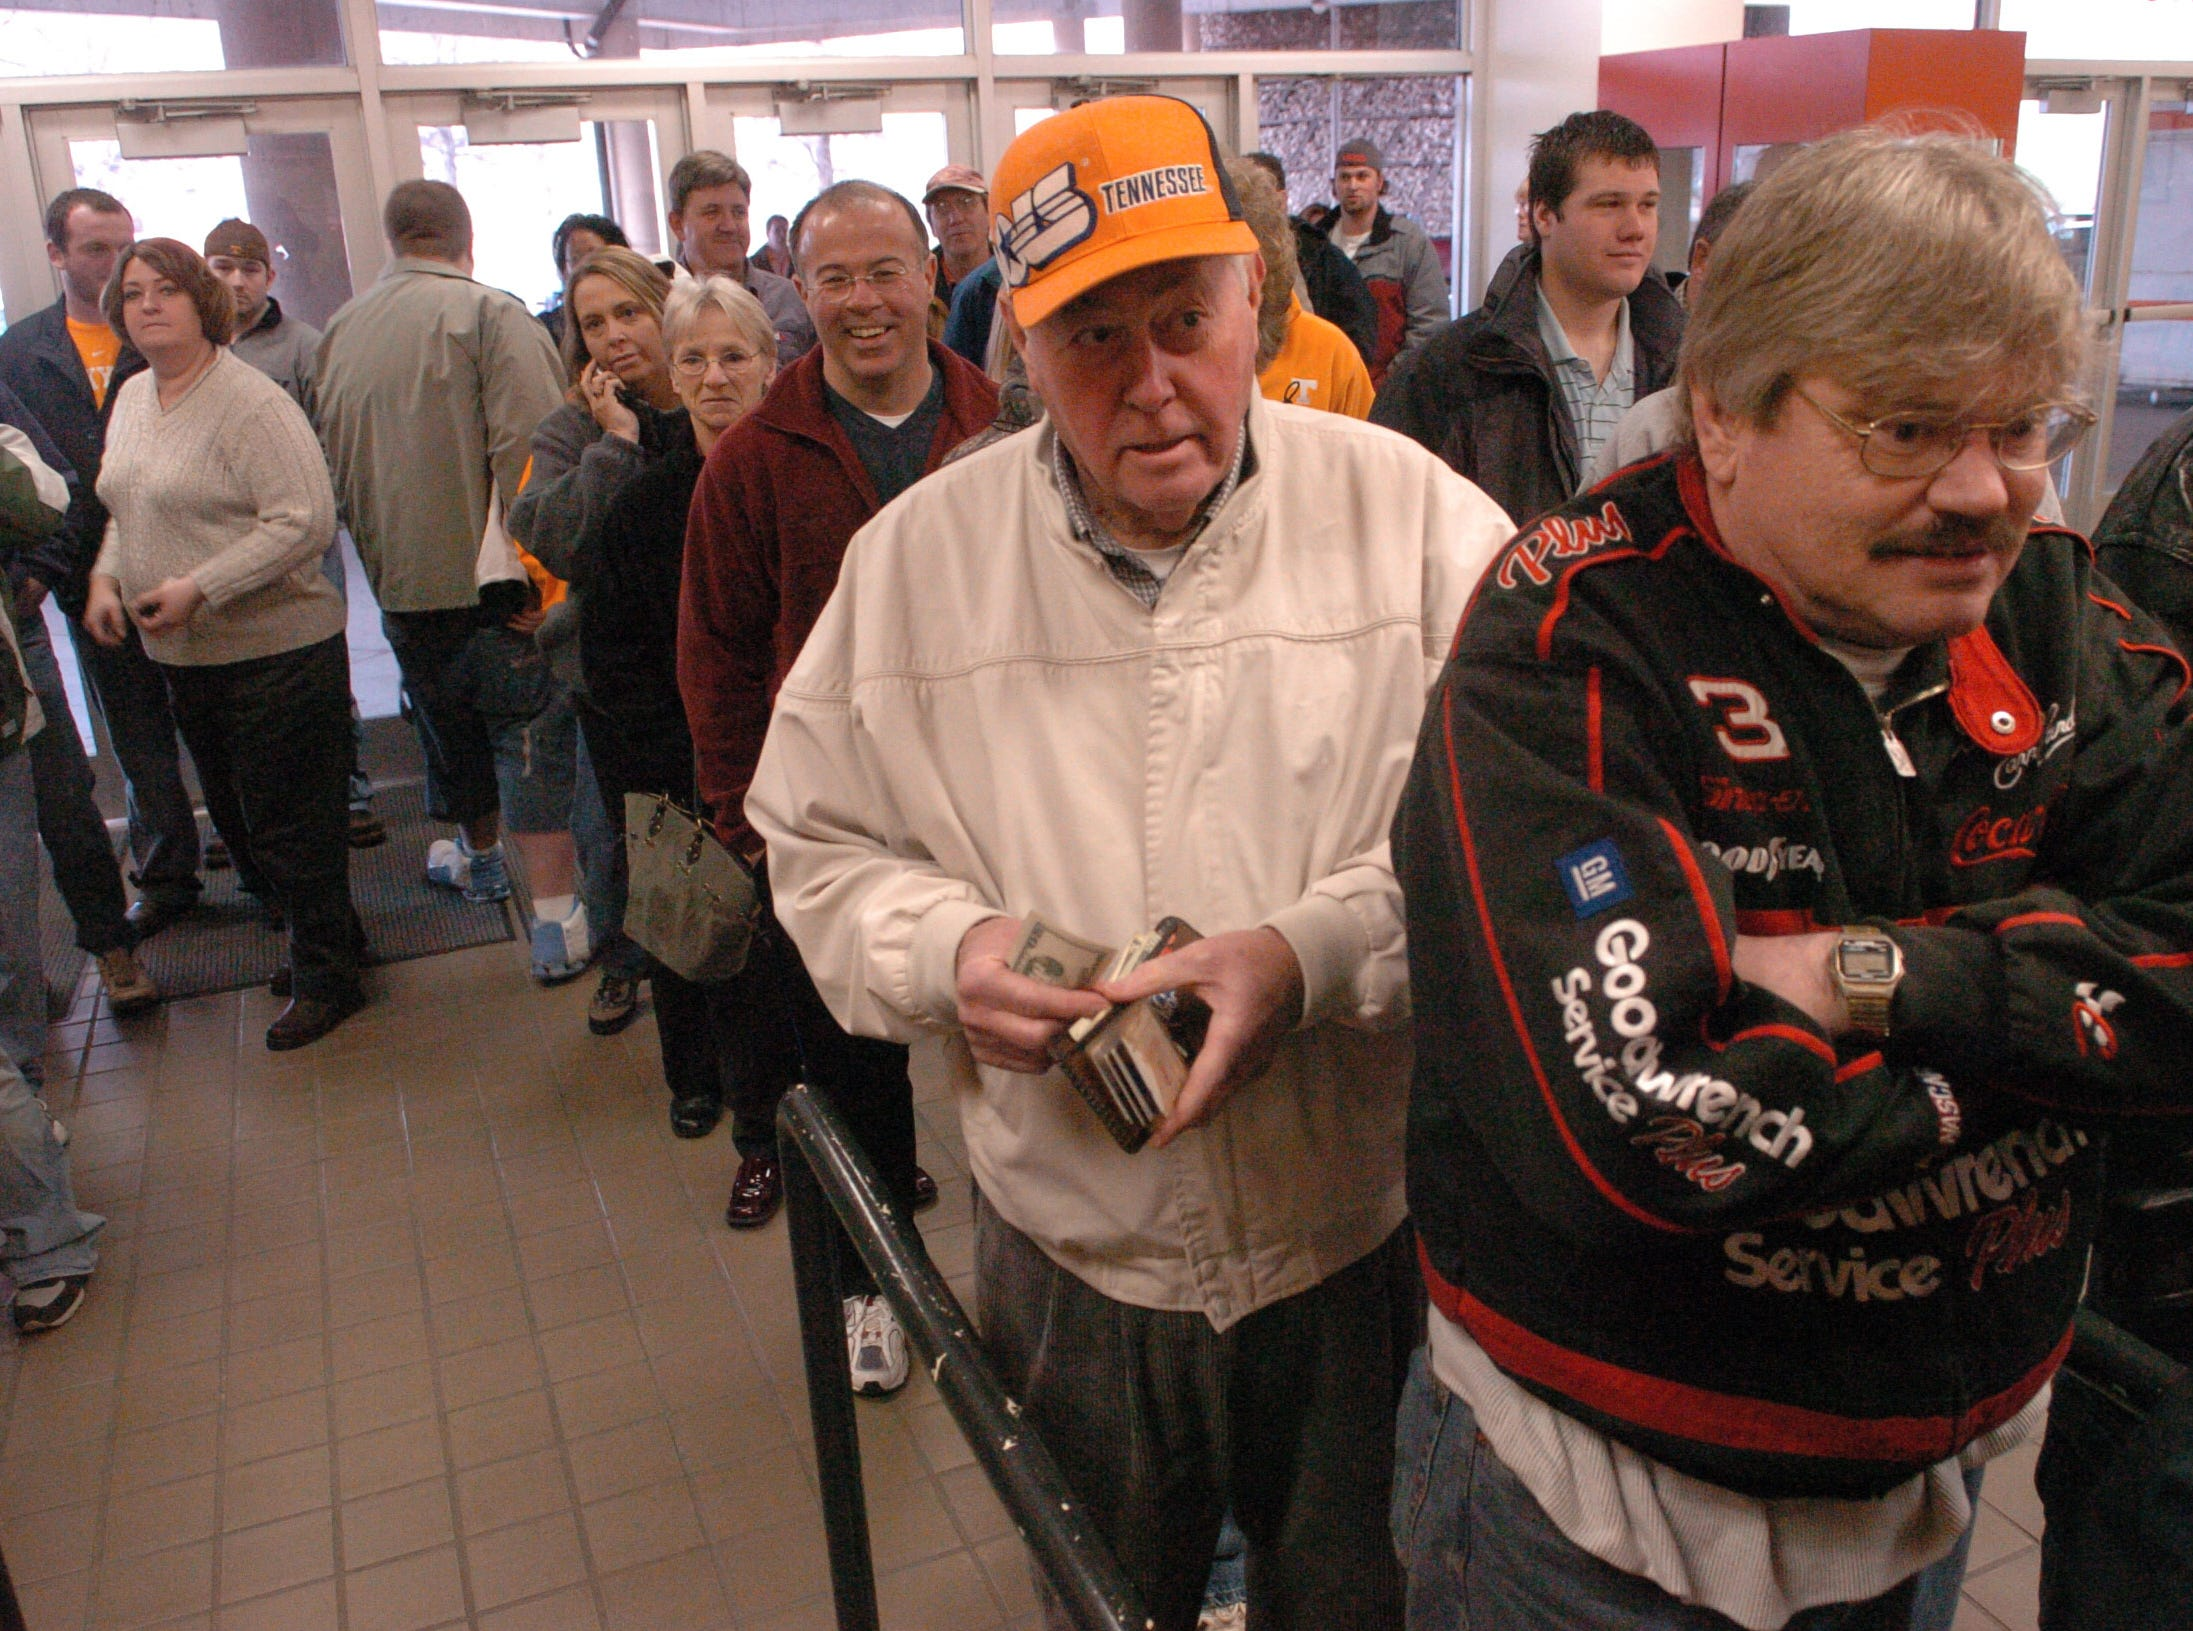 February 15, 2006 